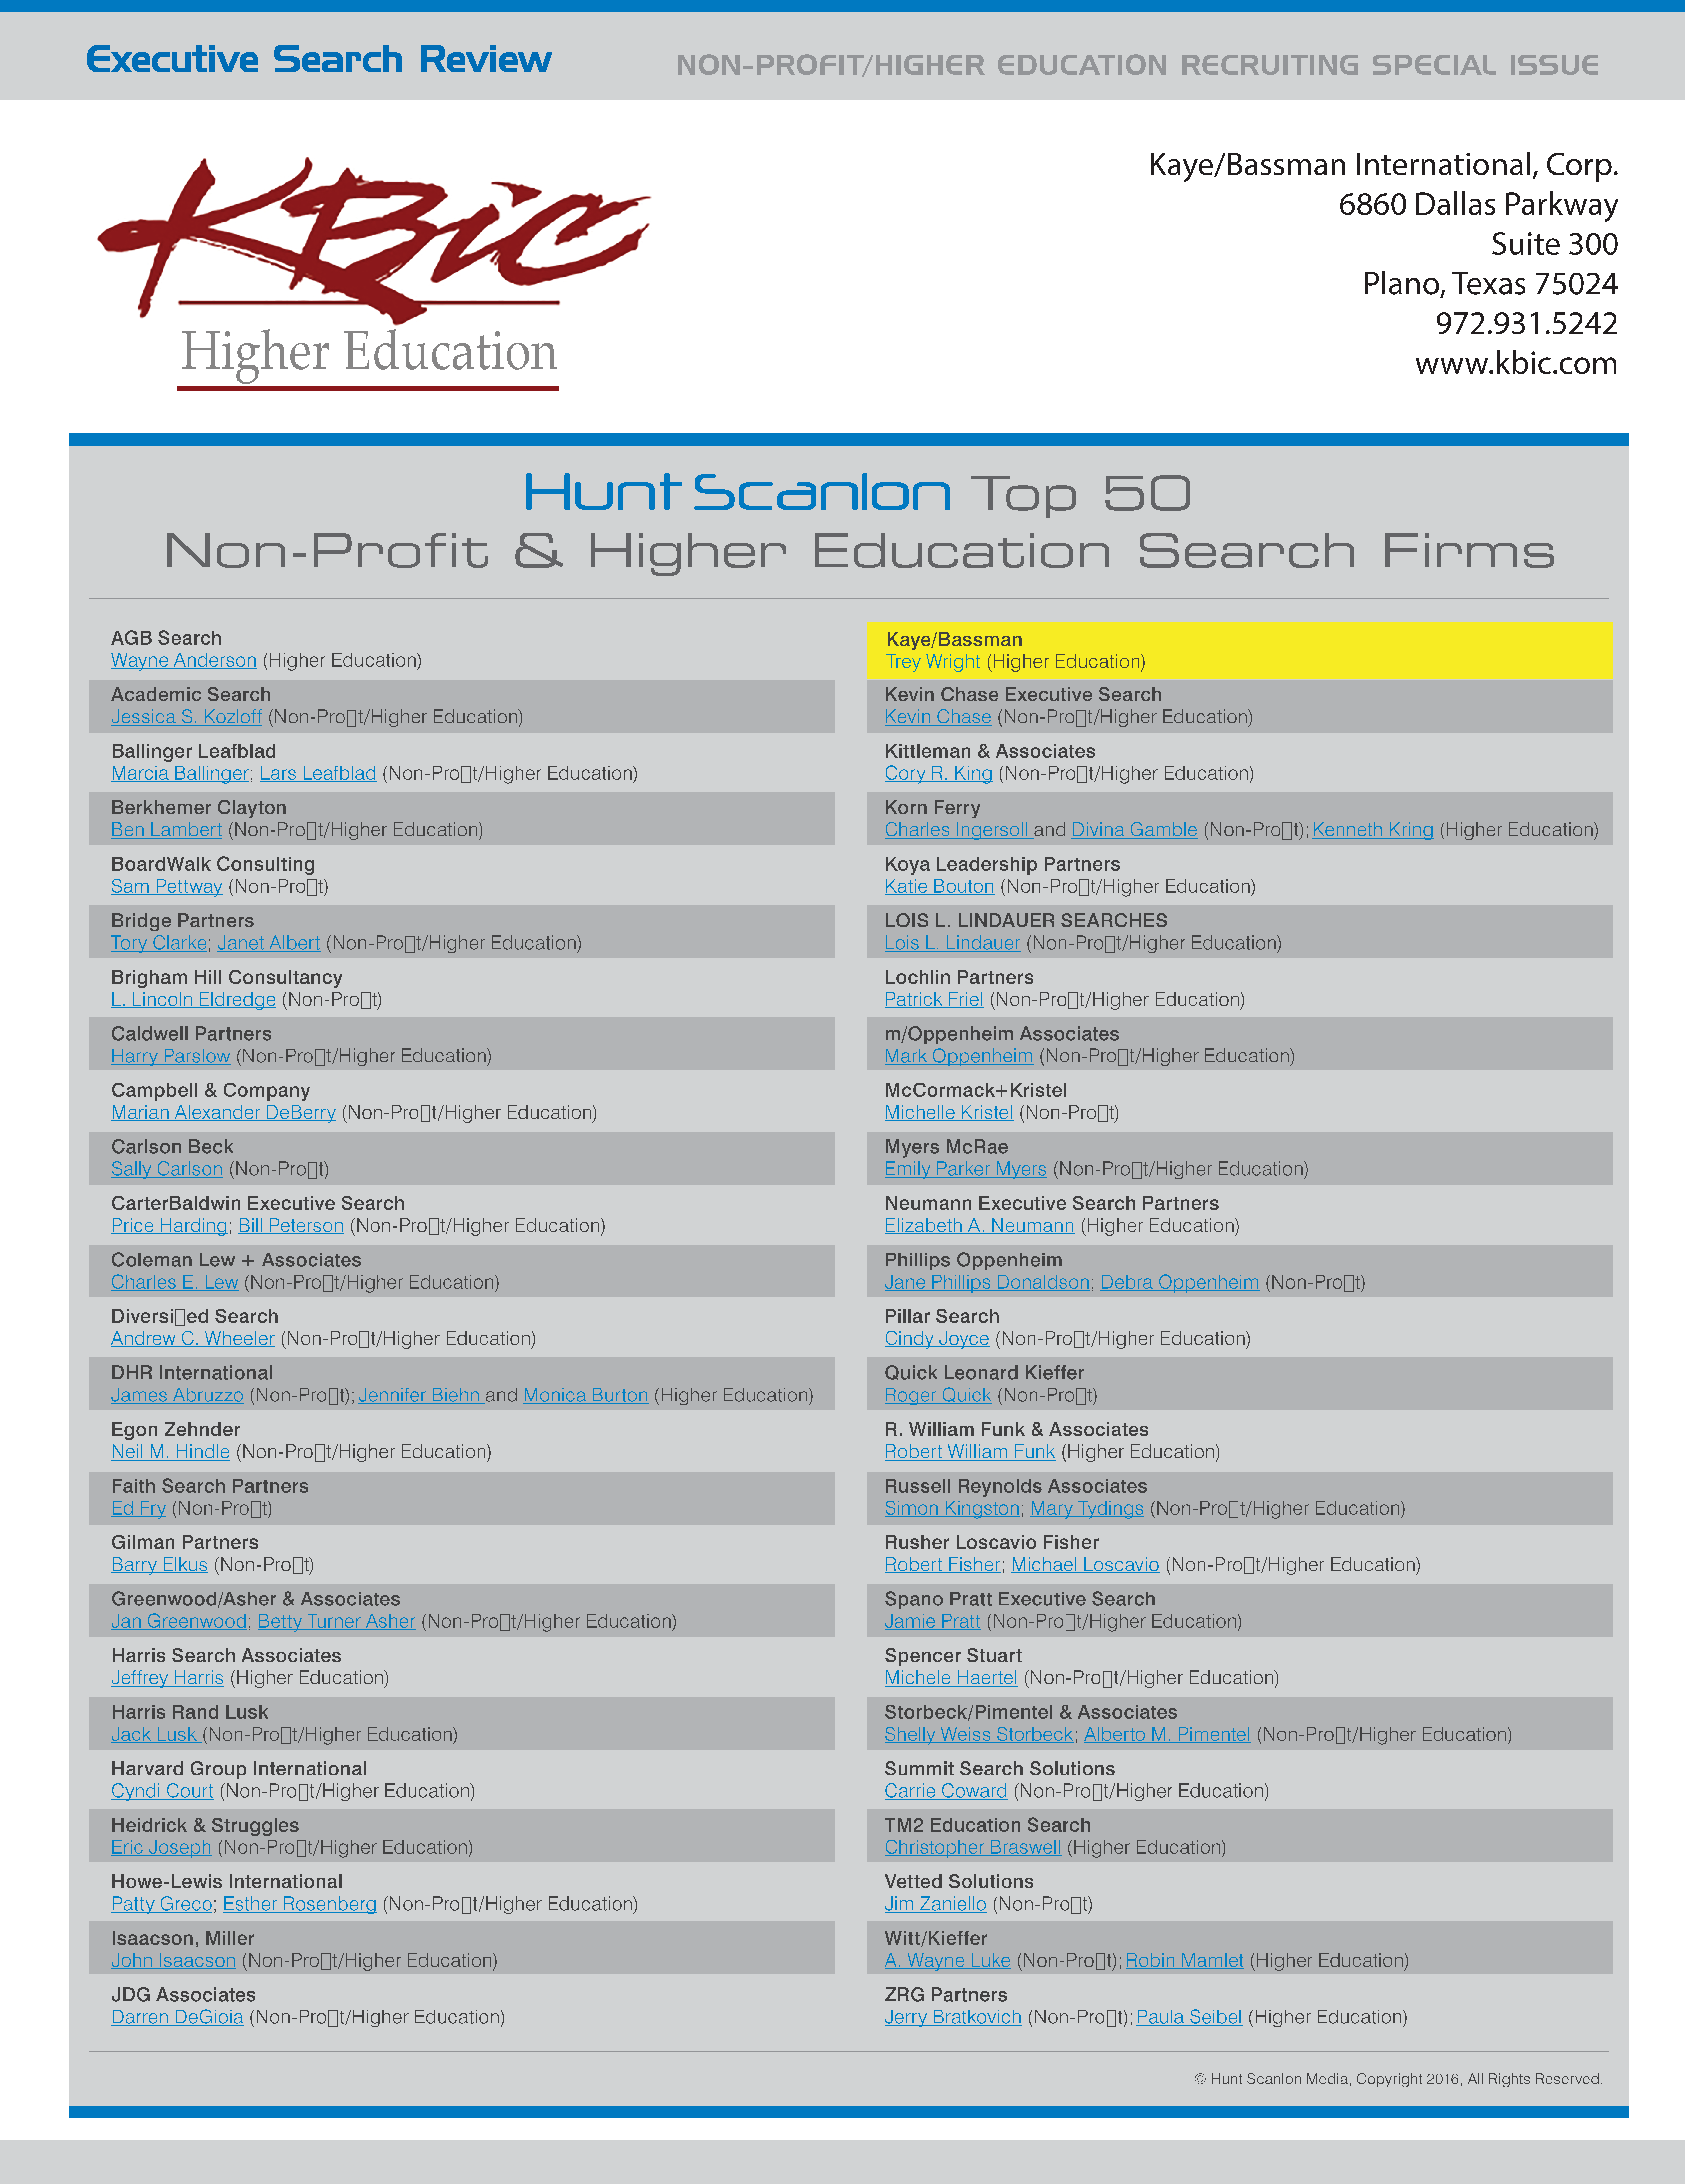 Hunct Scanlon Top 50 Non-Profit & Higher Education Search Firms